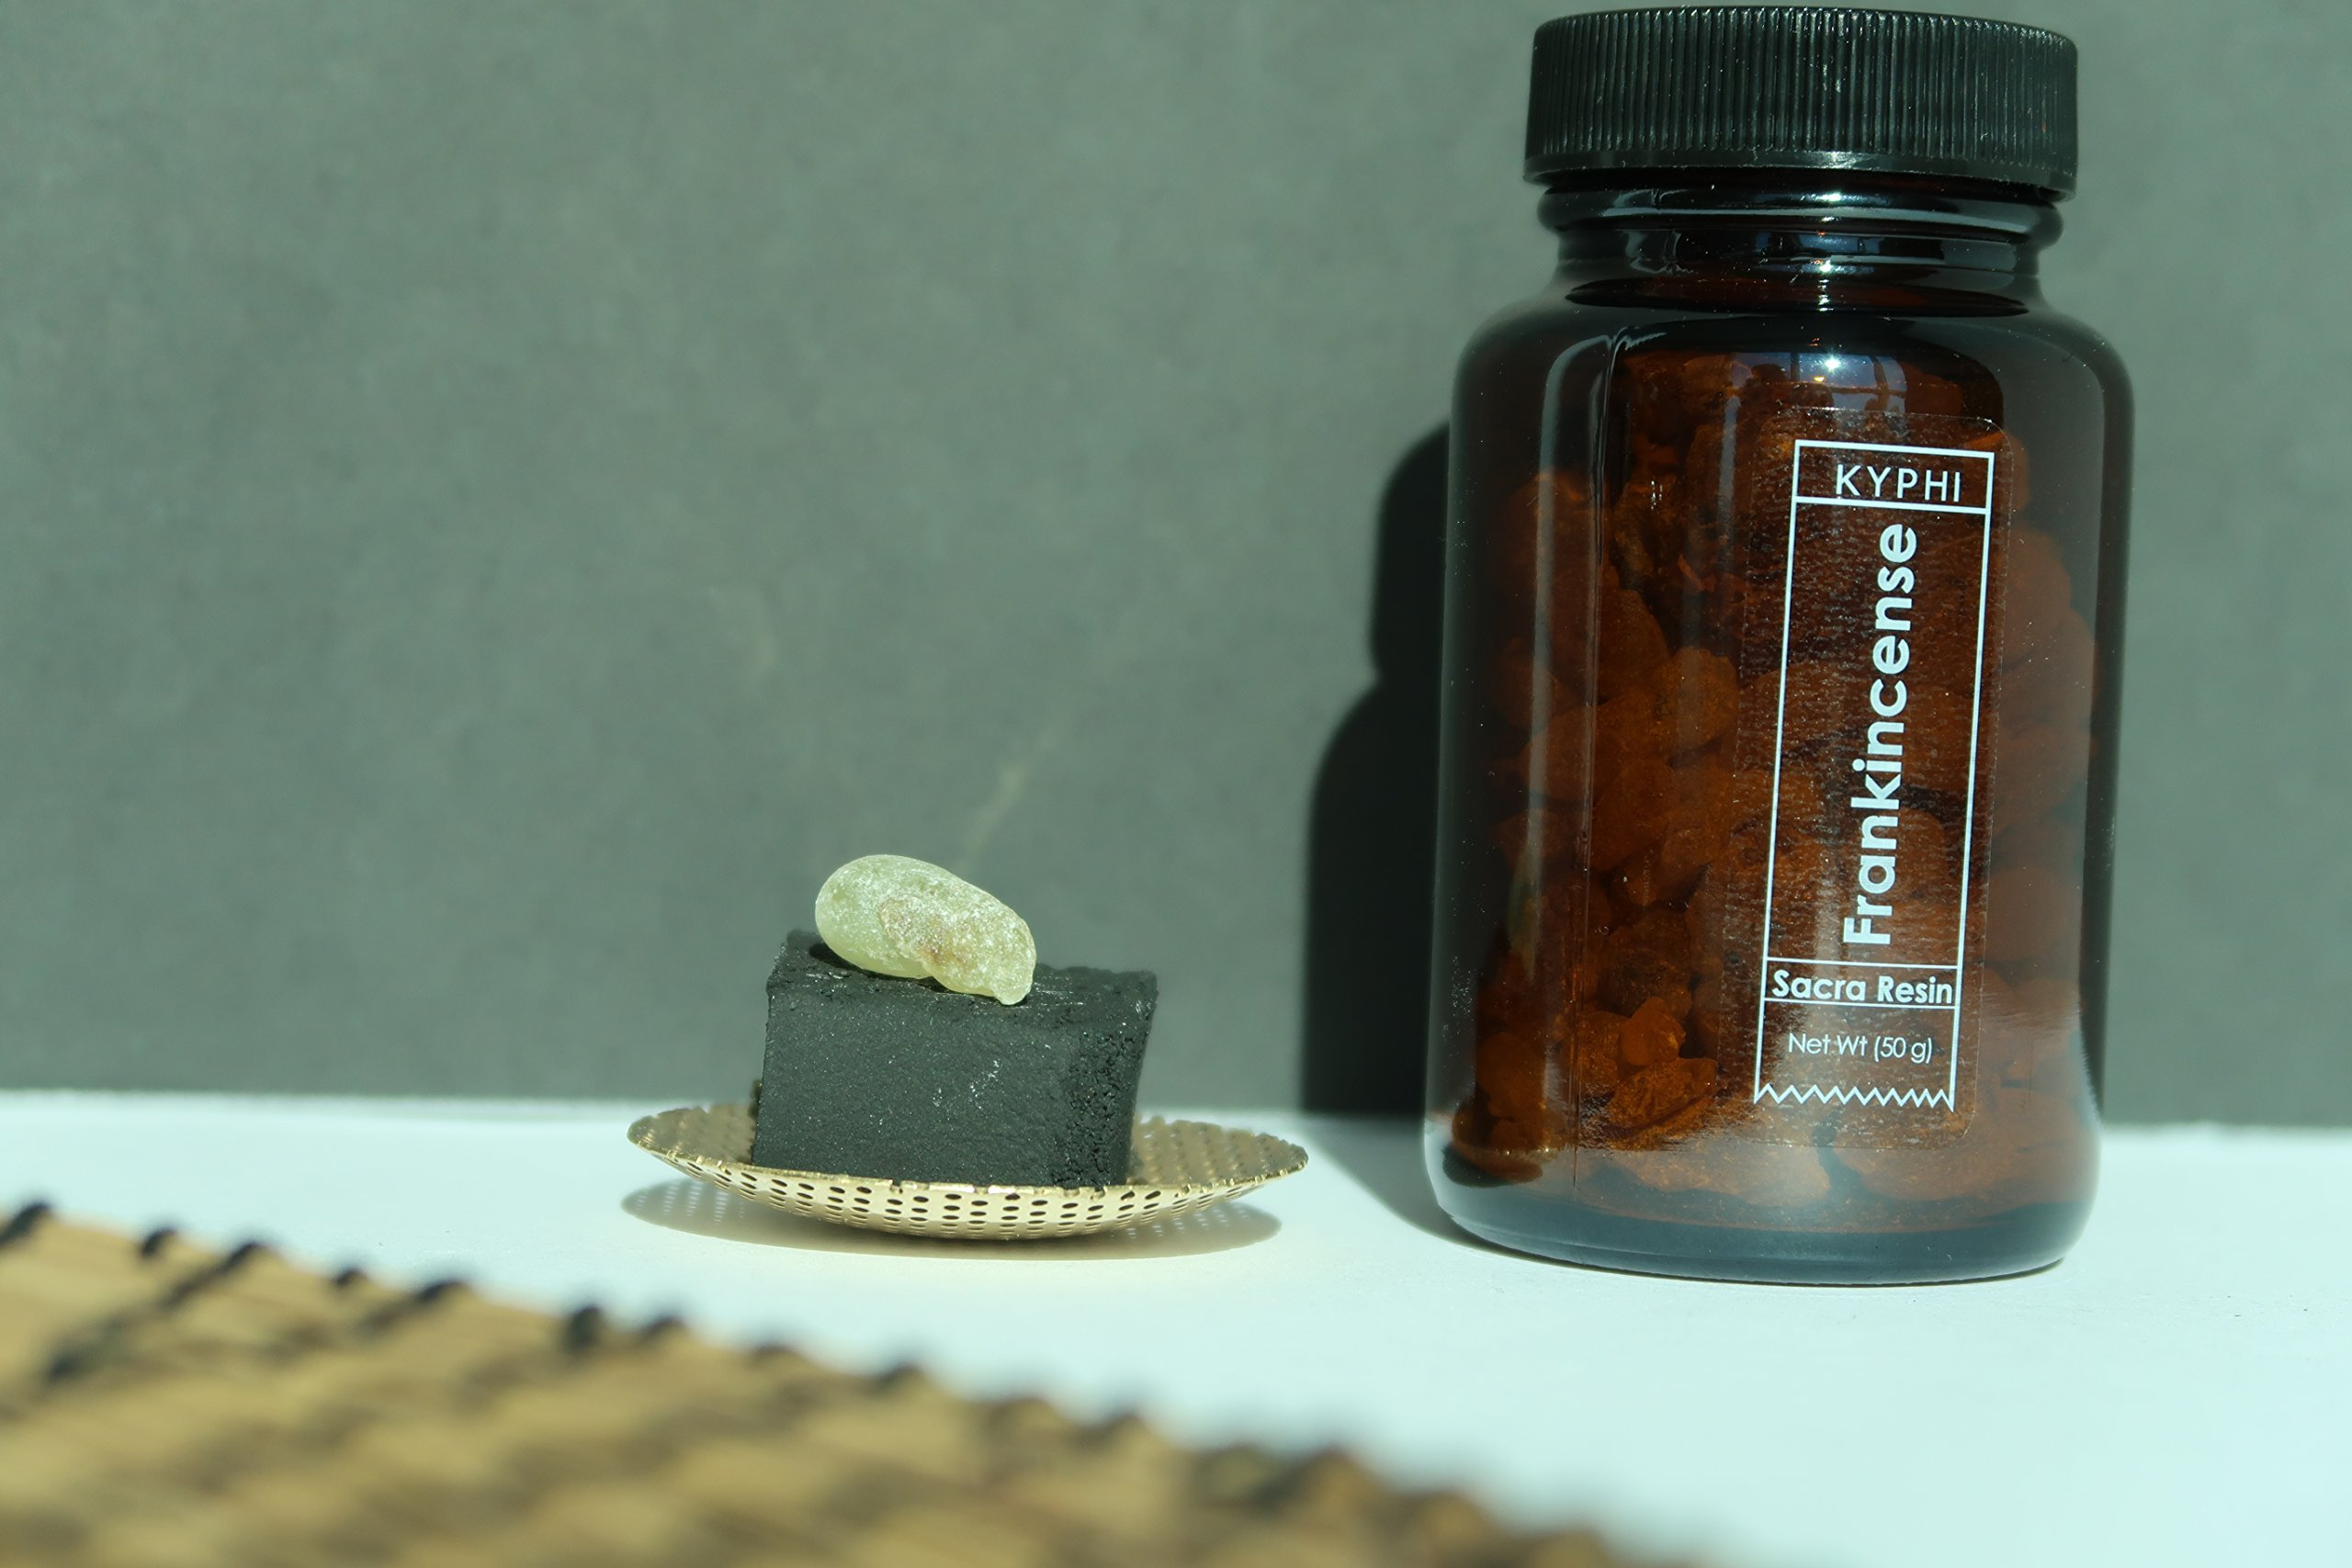 Kyphishop- Handmade Incense Burner Kit and Omani Frankincense Resin Ethically Graded Boswellia Sacra in a Beautiful Ready to use kit Includes Sulphur Free Coconut Shell Charcoal Cubes. by Kyphishop